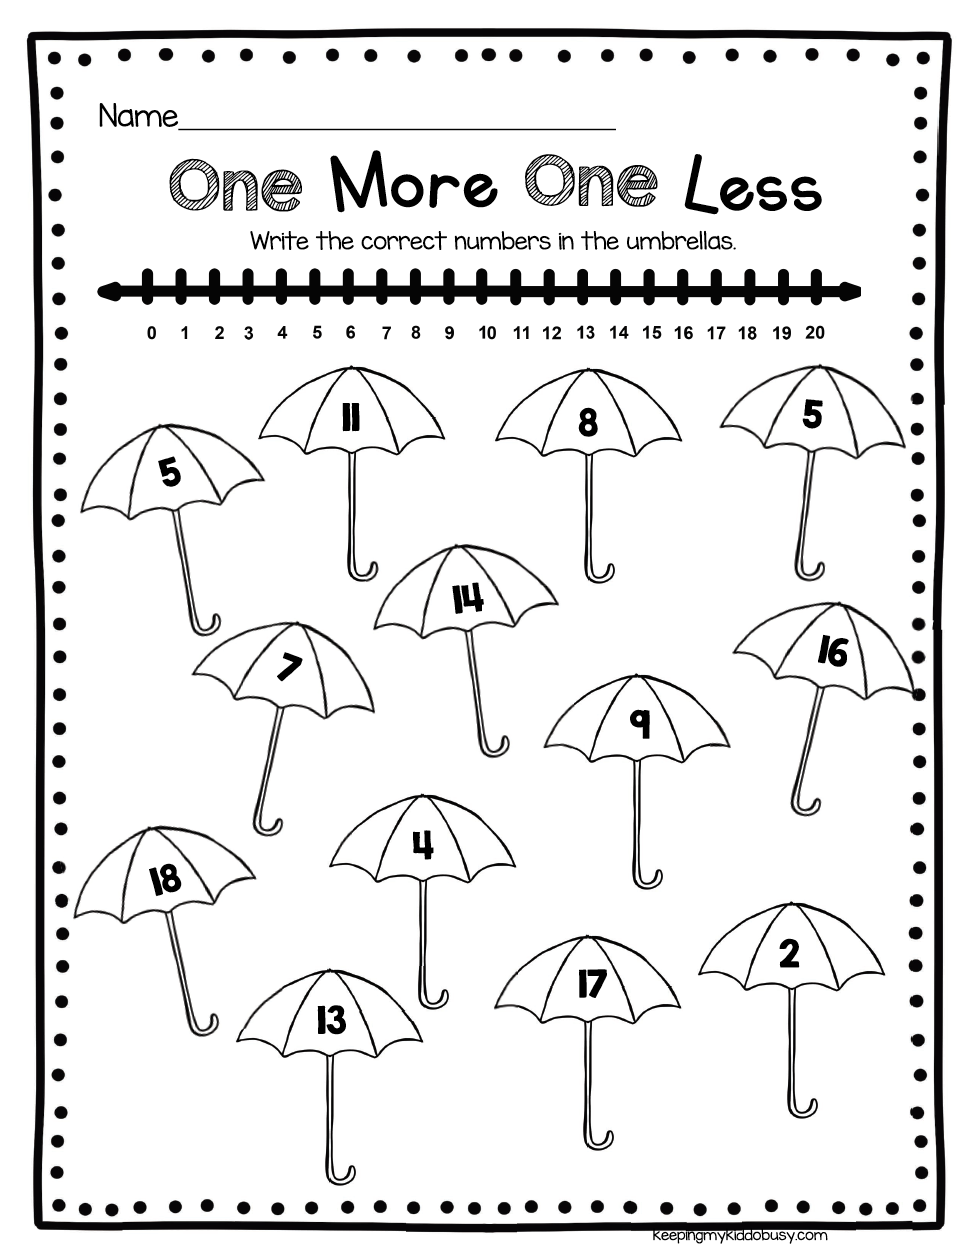 33++ Math worksheets one more one less Images